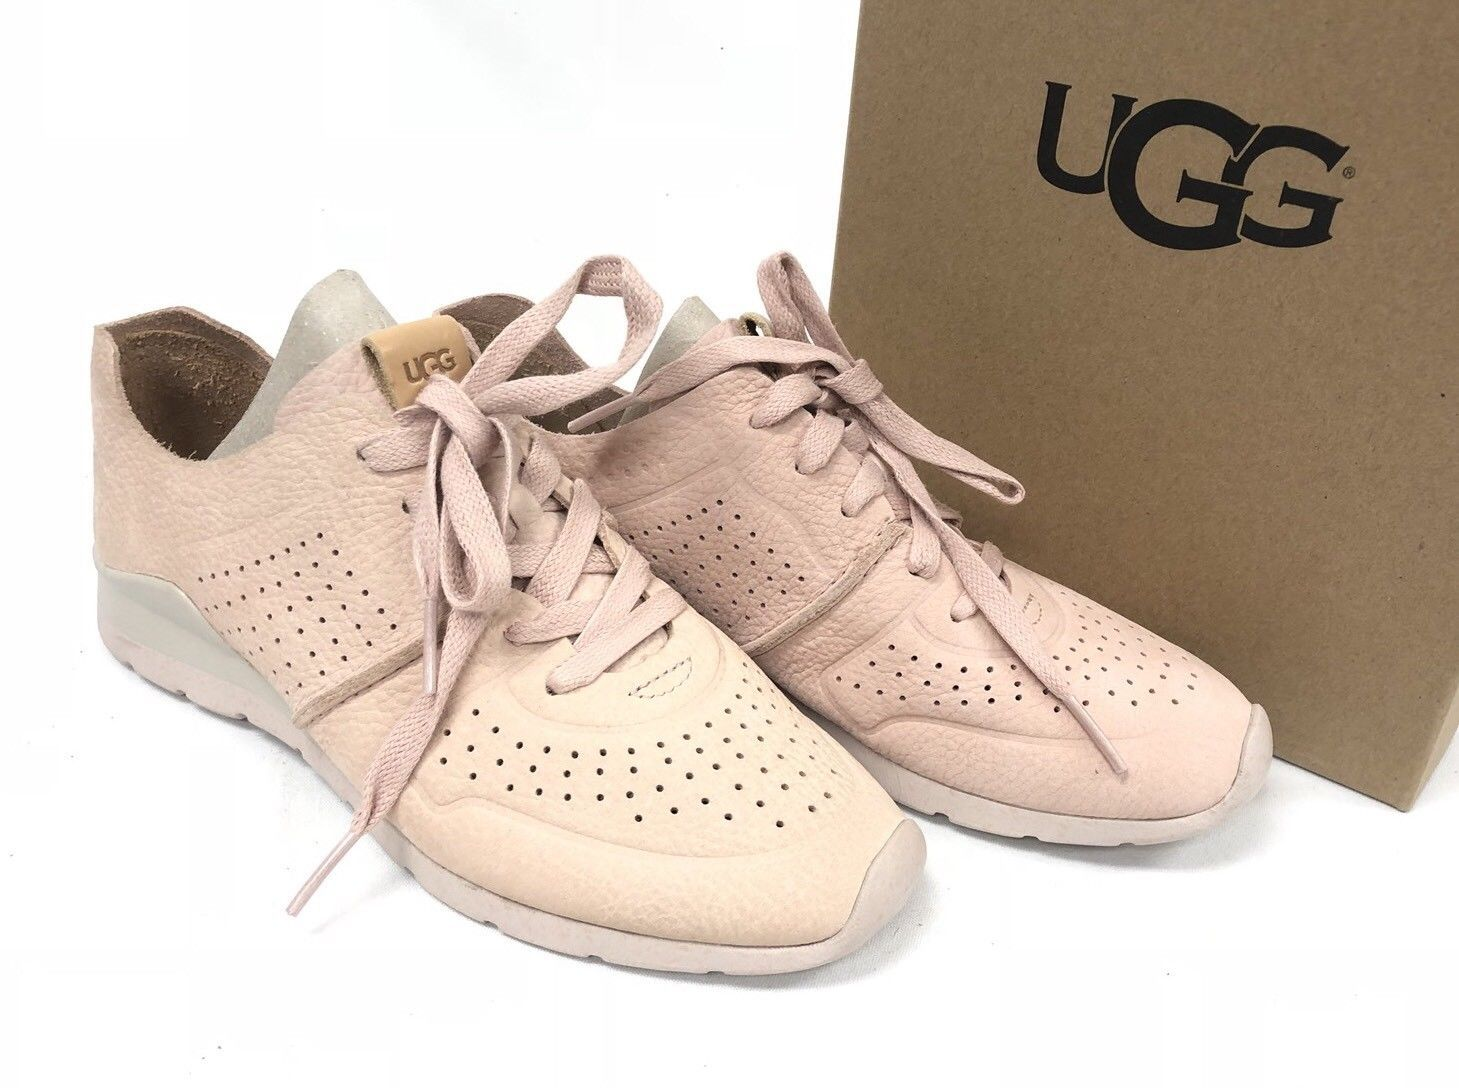 UGG Australia Tye Lace Up Leather Perforated Fashion Sneakers 1016674 Quartz 7